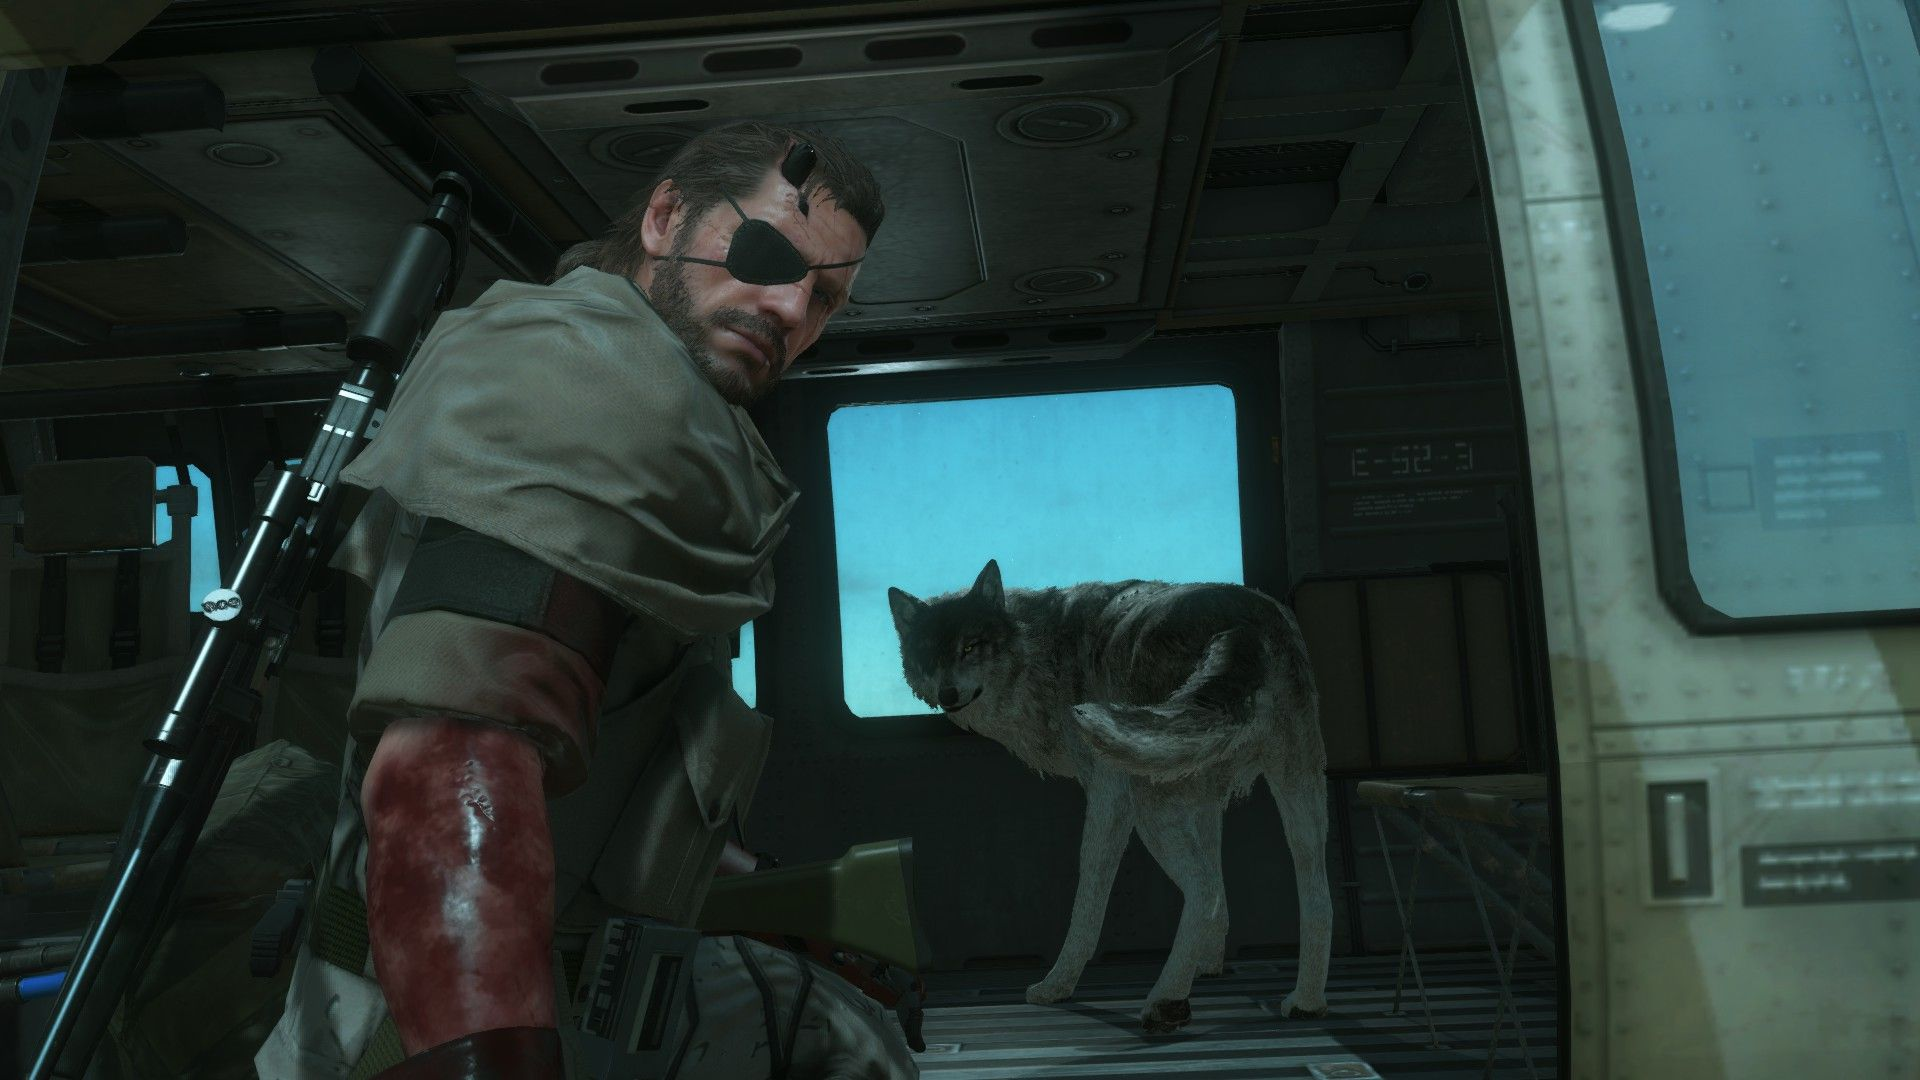 A screenshot of the interior of a helicopter from Metal Gear Solid V showing snake, with his cool eyepatch, kneeling inside. Behind him, his cool wolf dog Diamond Dog has turned to snarl at the camera.